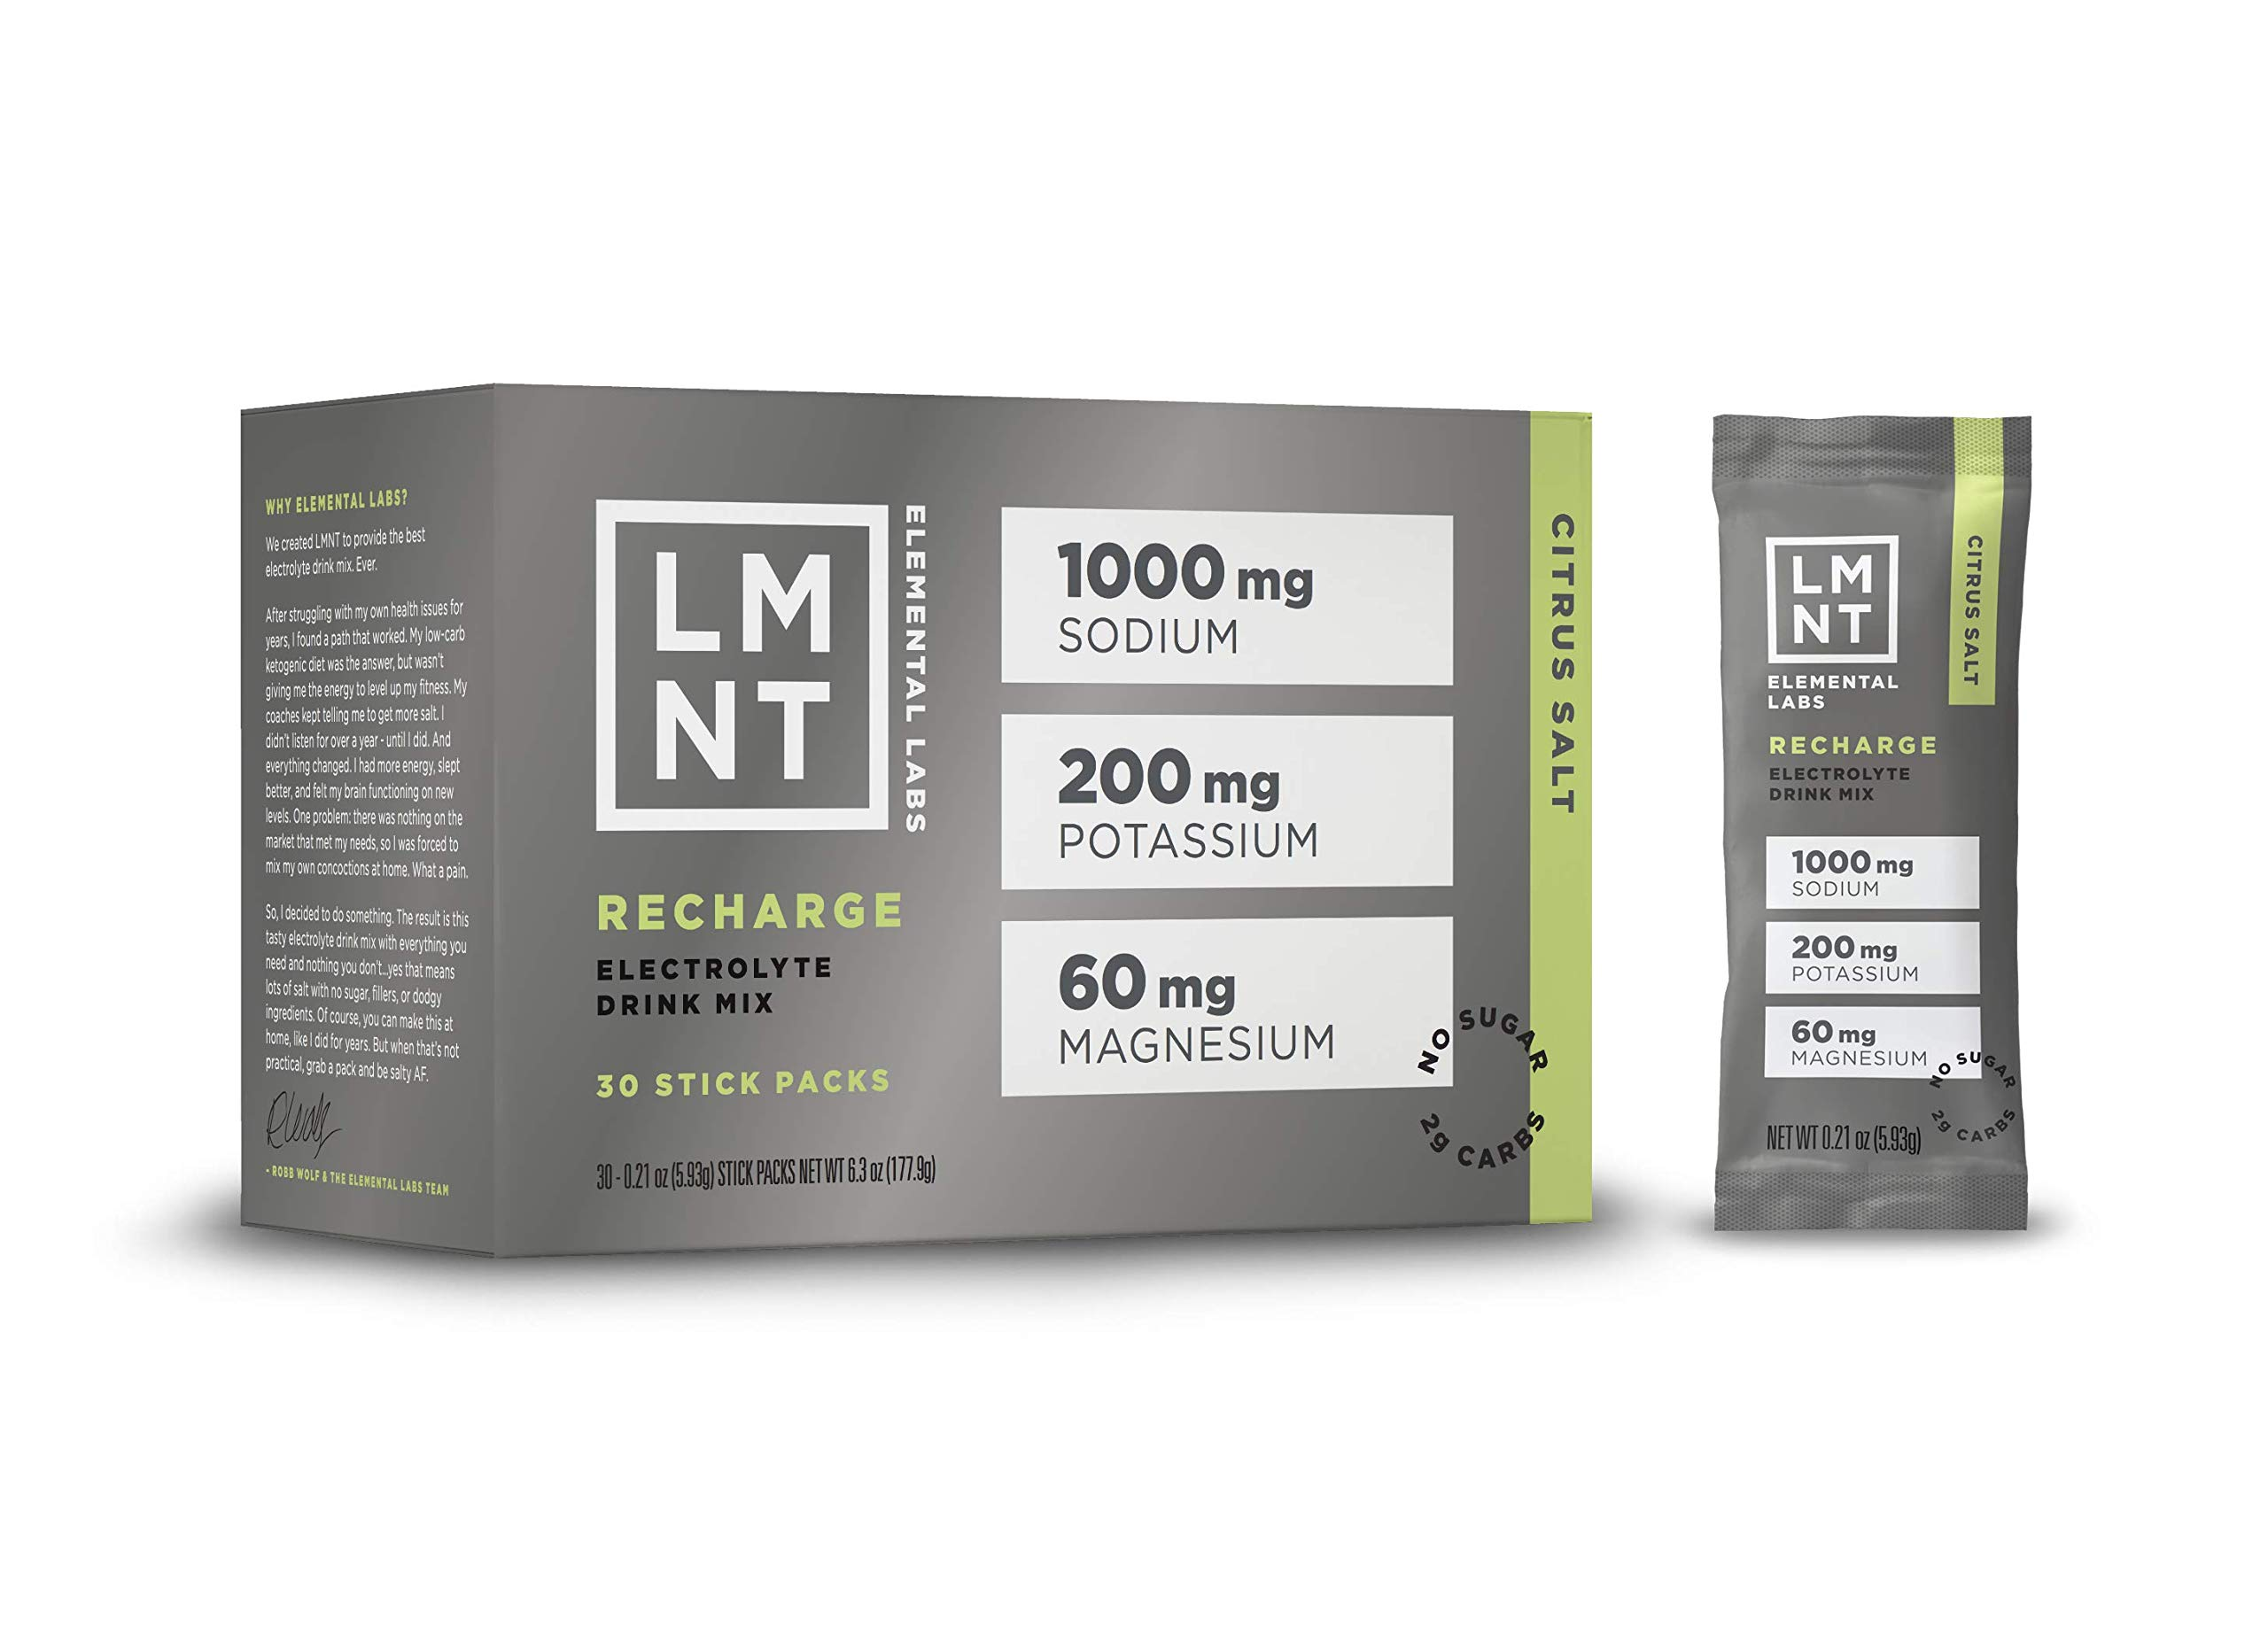 LMNT Recharge Electrolyte Drink Mix | Citrus Salt | Hydration Powder Packs | Keto, Paleo, Vegan, Non-GMO, Gluten-Free, No Sugar, No Artificial Ingredients | Maximize The Energy Health Benefits of Salt by Elemental Labs